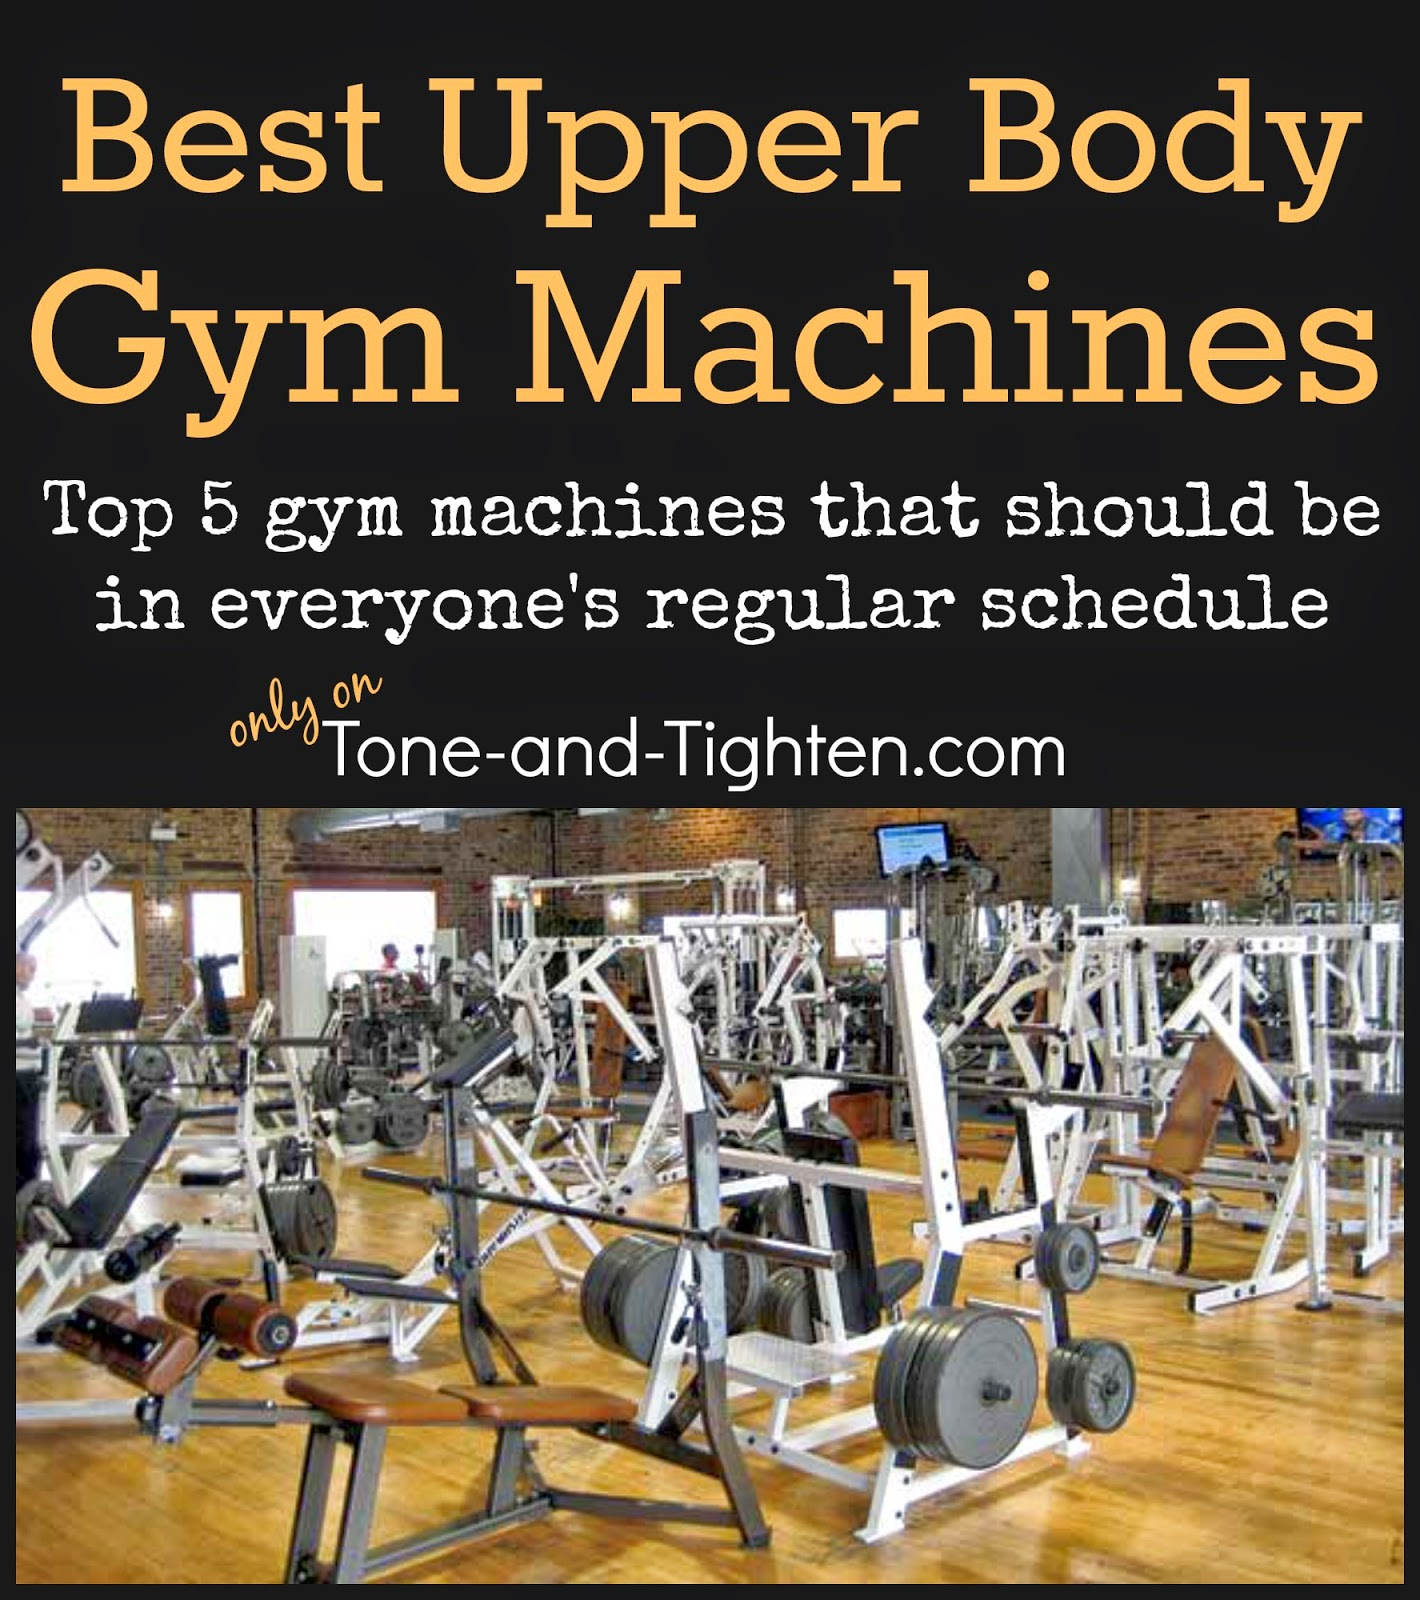 http://tone-and-tighten.com/2014/02/best-upper-body-gym-machine-exercises-the-moves-you-need-to-be-doing.html